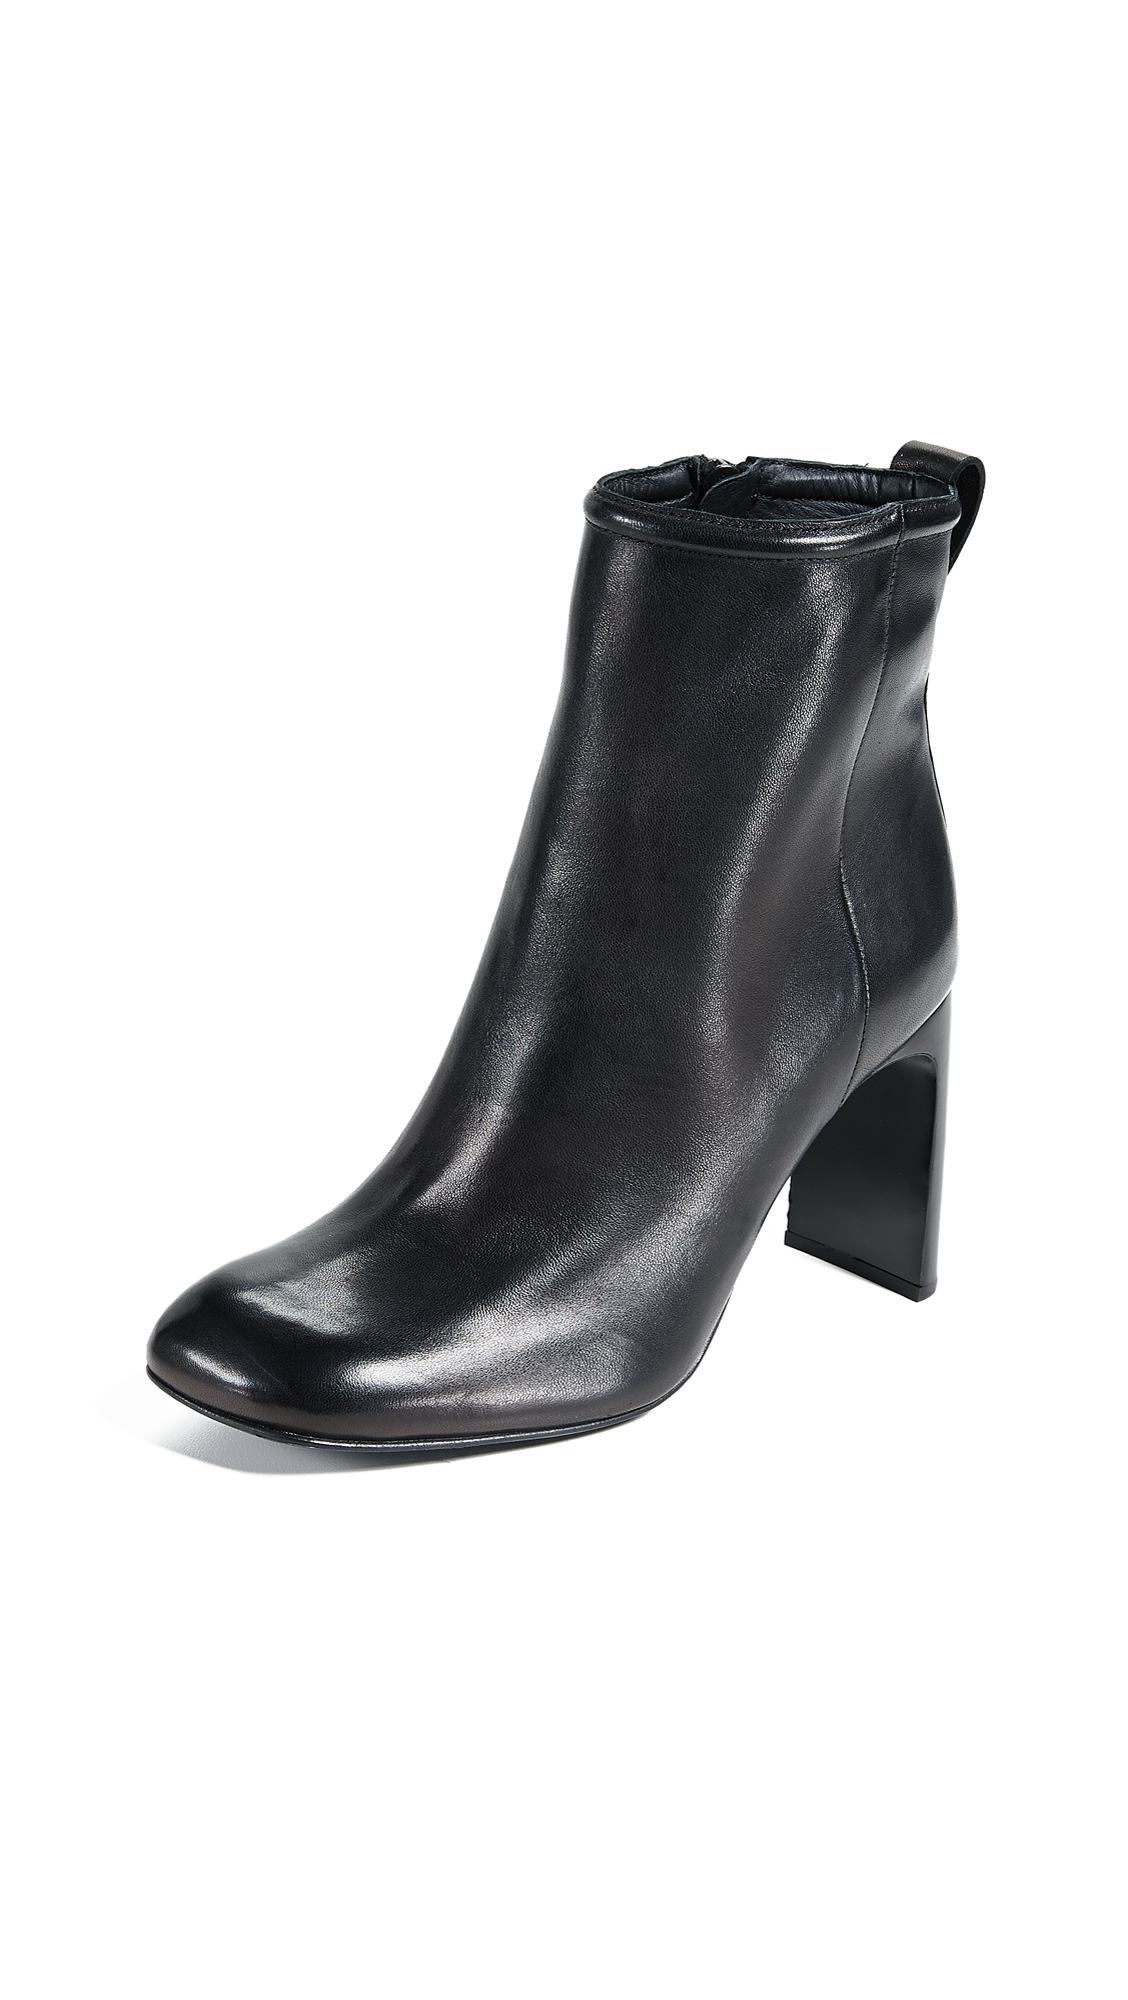 Rag & Bone Ellis Booties - 60% Off Sale